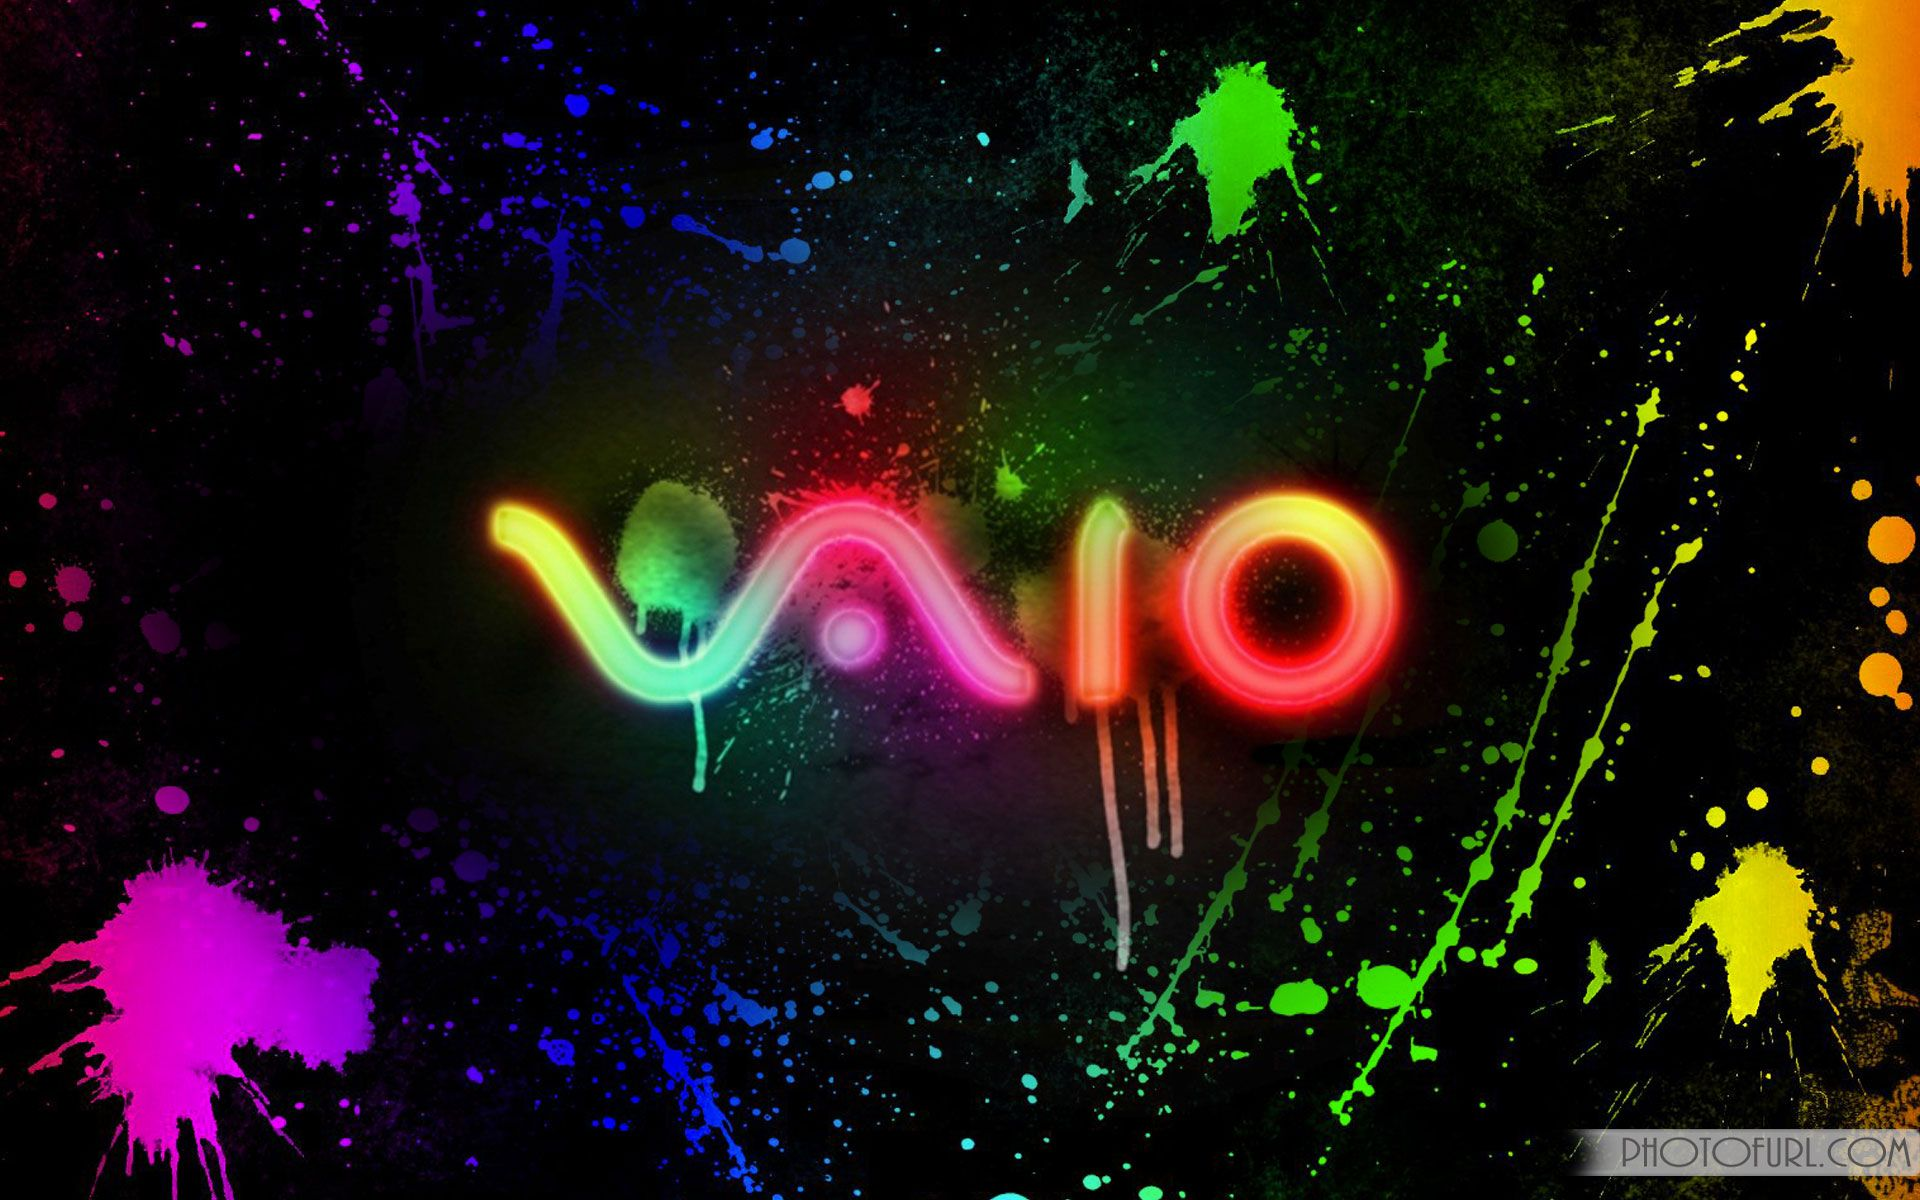 Sony vaio sony psp backgrounds widescreen and hd background sony vaio sony psp backgrounds widescreen and hd background wallpaper voltagebd Image collections